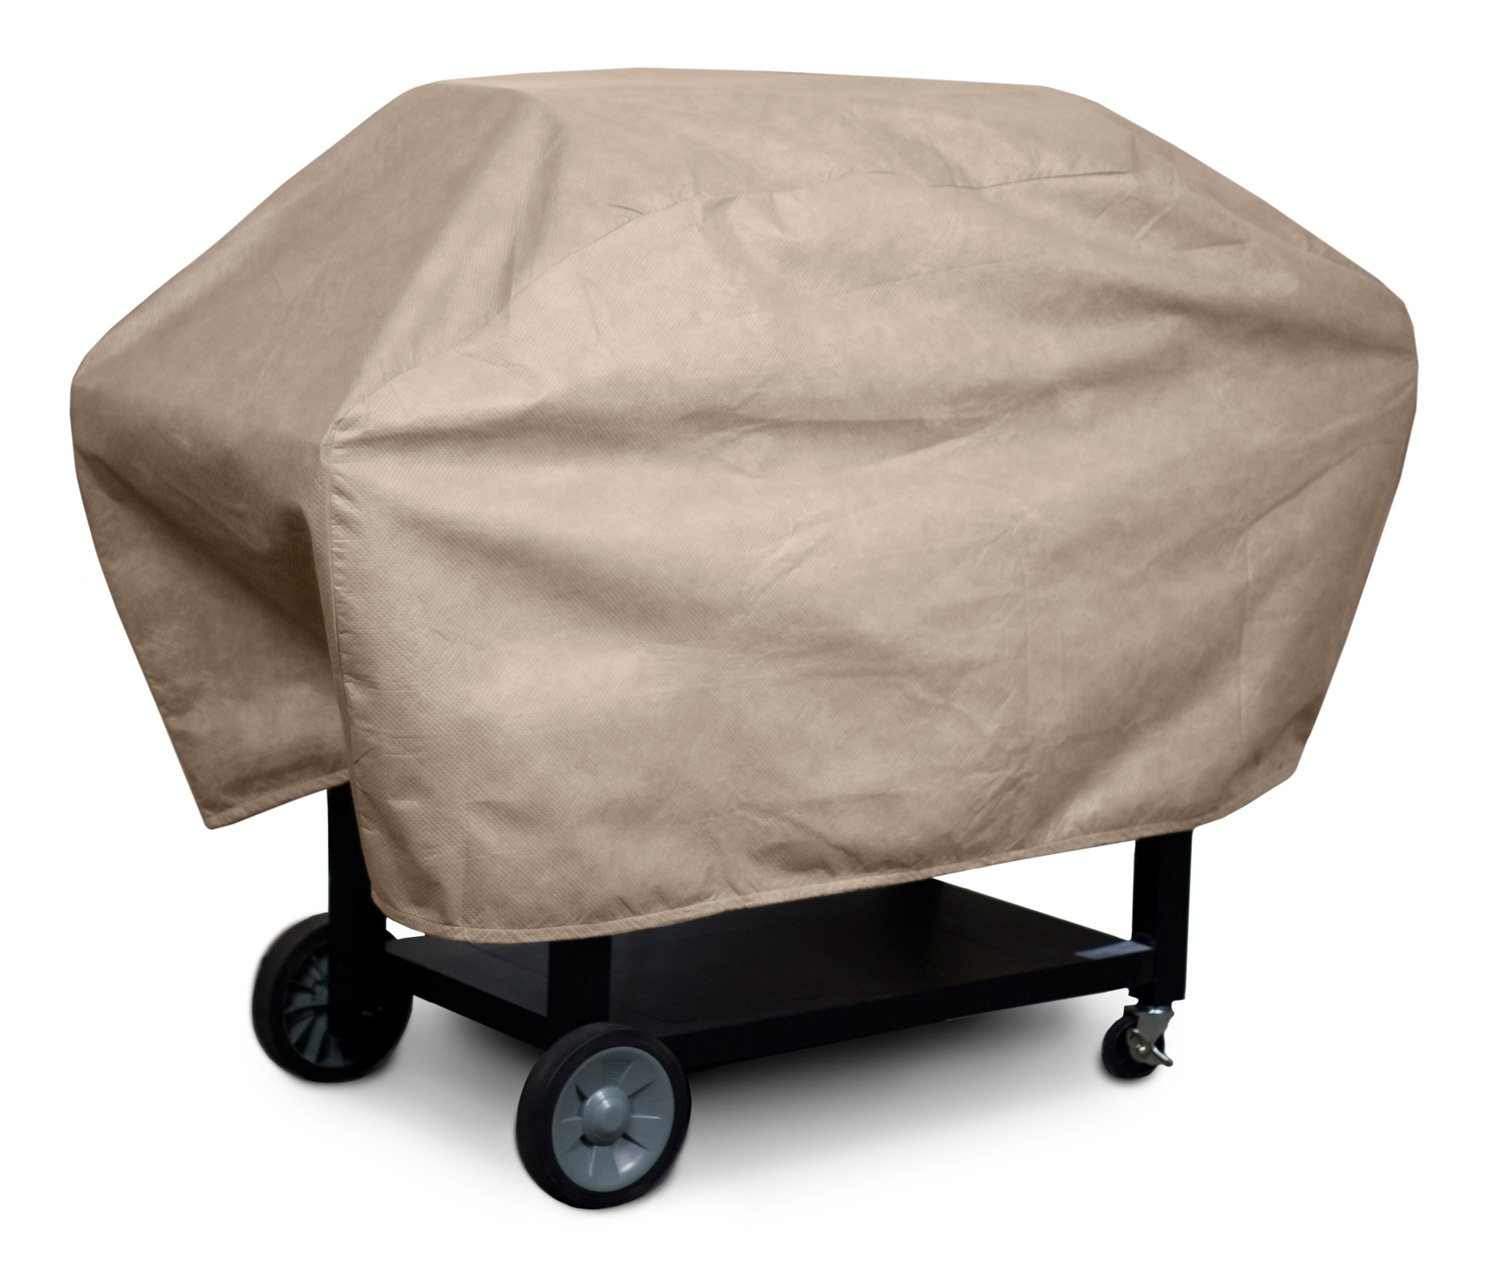 KoverRoos 33062 Medium Barbecue Cover, Choose Fabric Color 3 Taupe